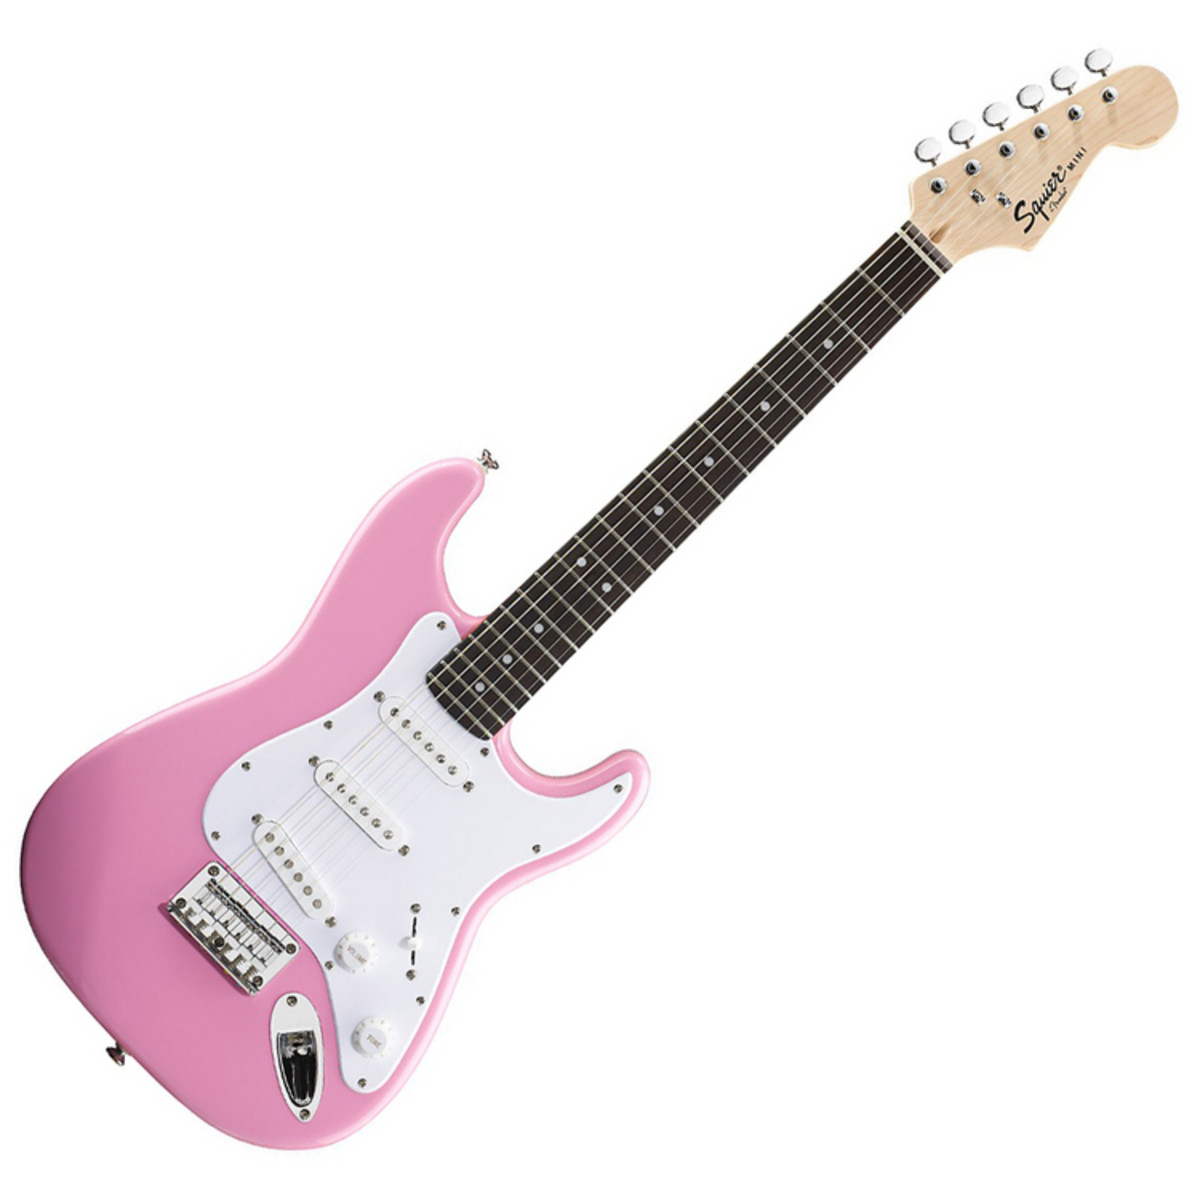 squier by fender mini stratocaster 3 4 size electric guitar pink at. Black Bedroom Furniture Sets. Home Design Ideas